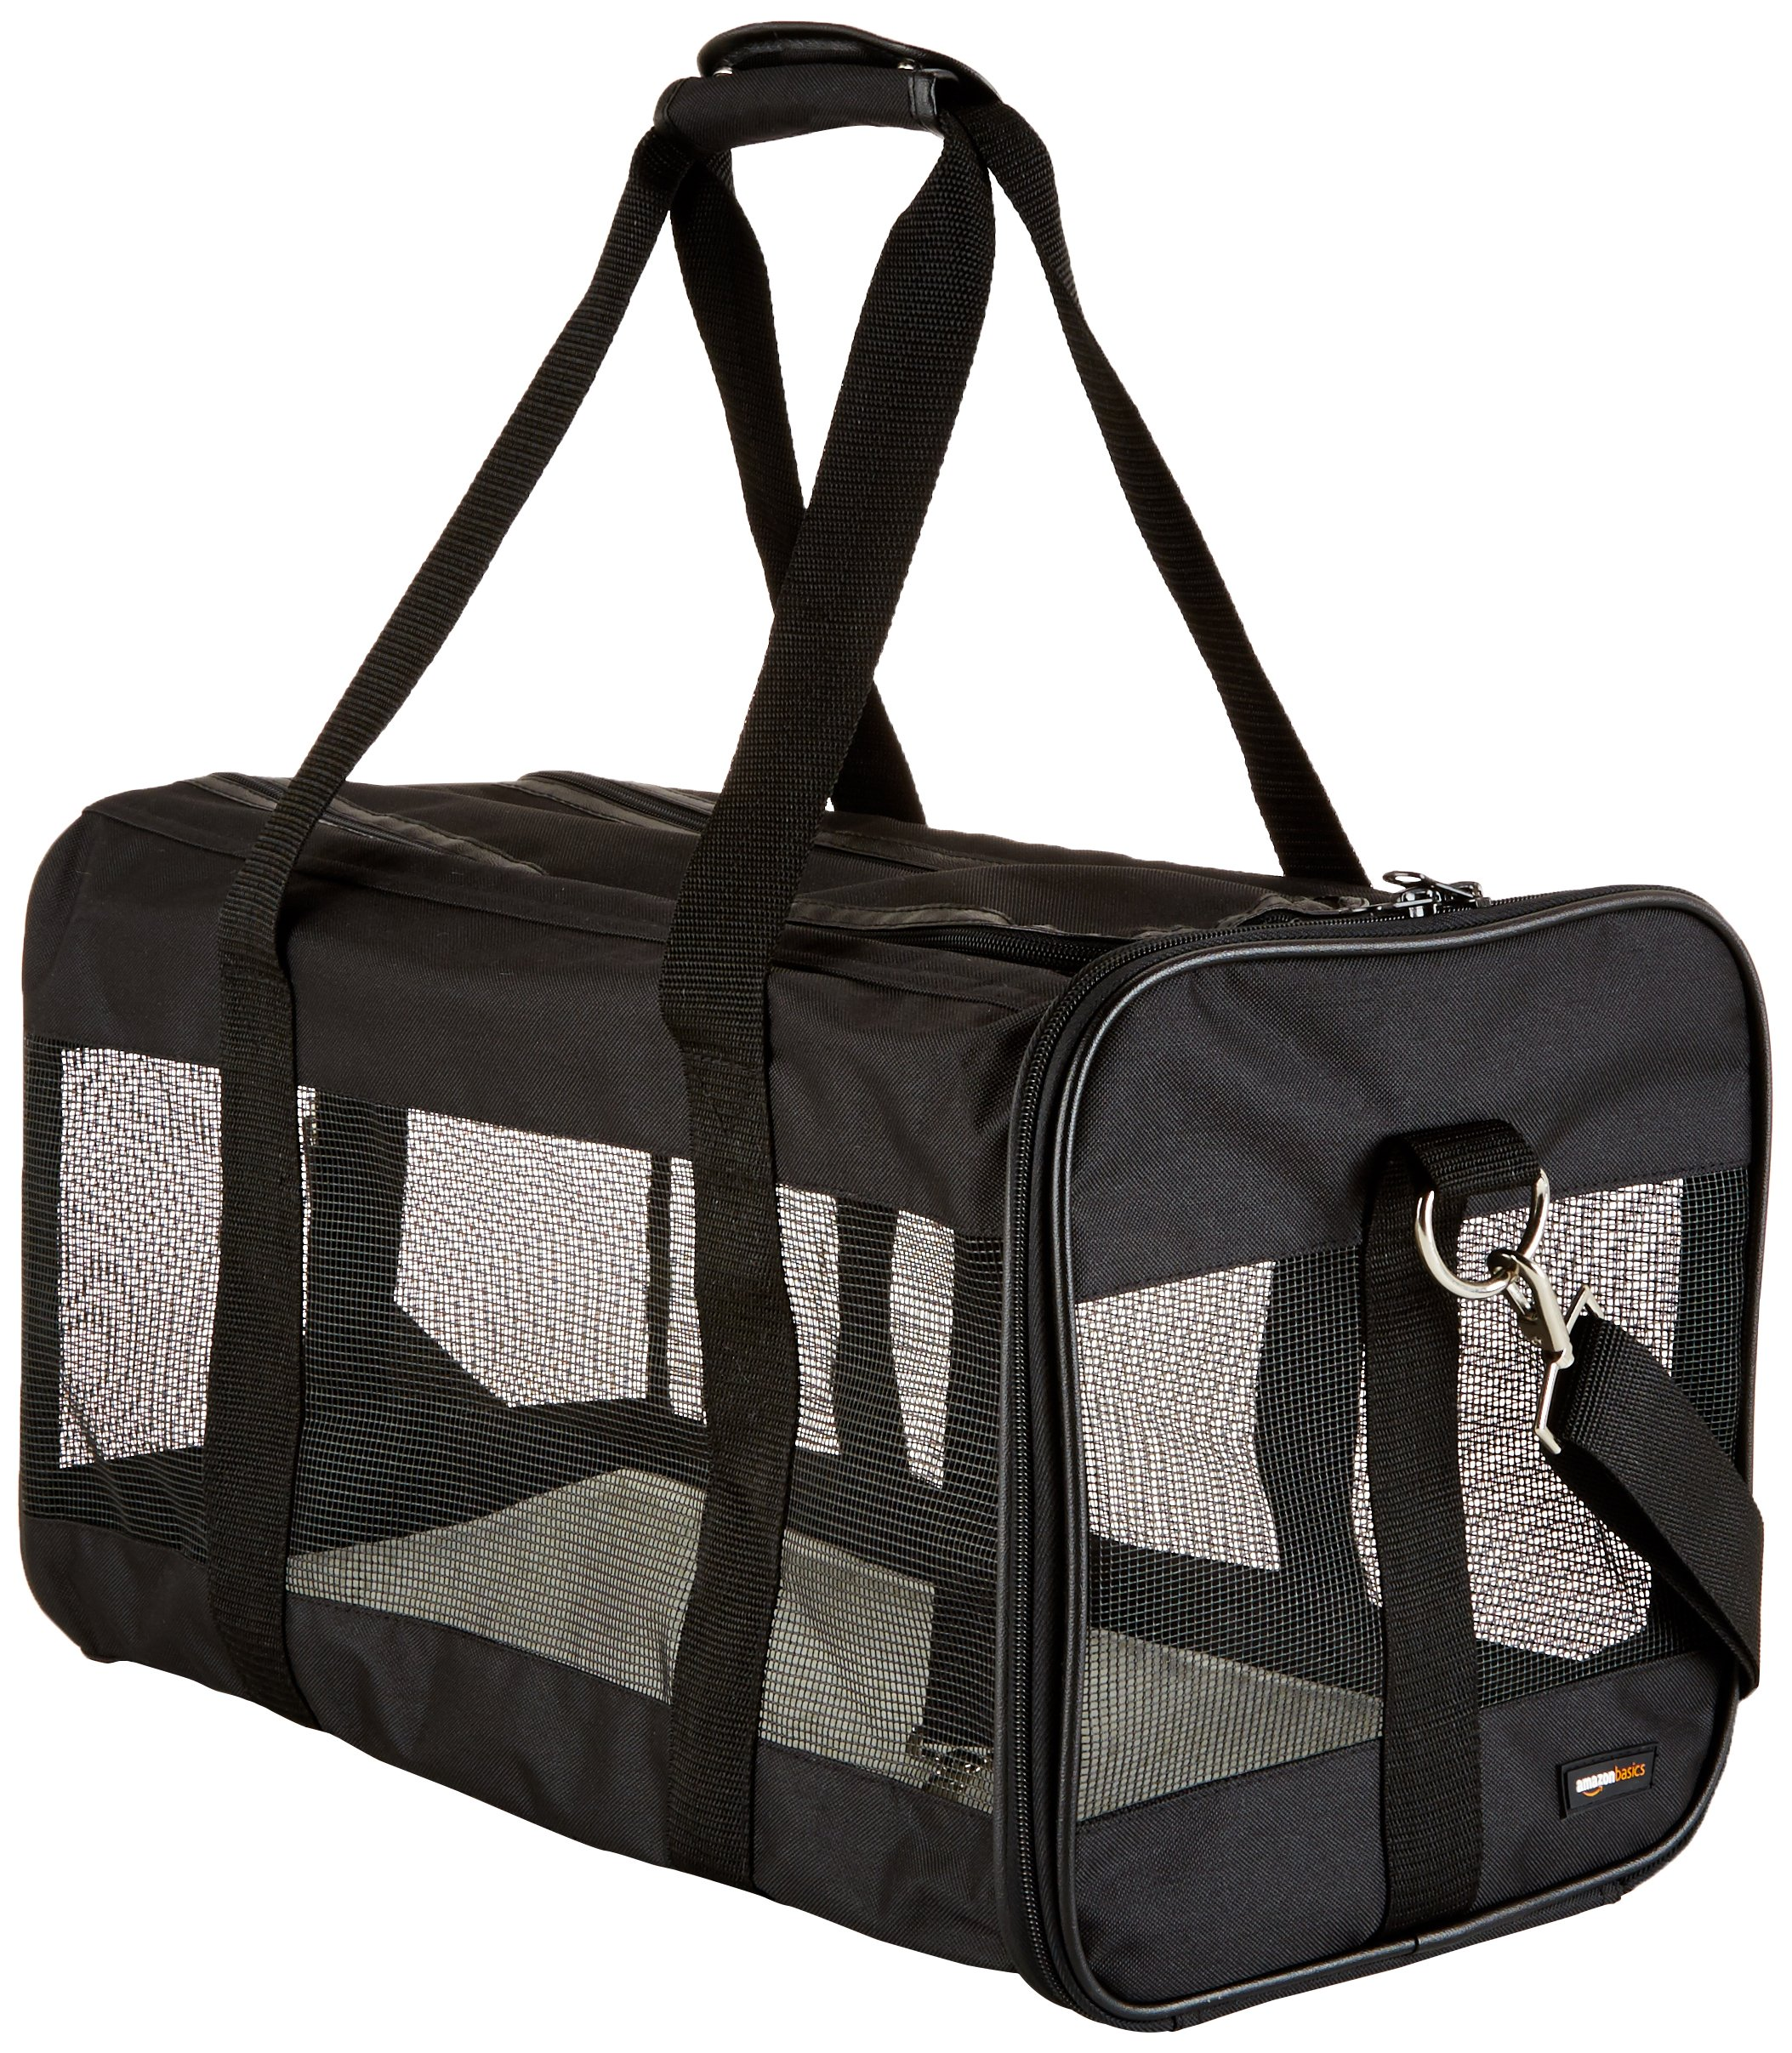 AmazonBasics Large Soft-Sided Mesh Pet Transport Carrier Bag - 20 x 10 x 11 Inches, Black by AmazonBasics